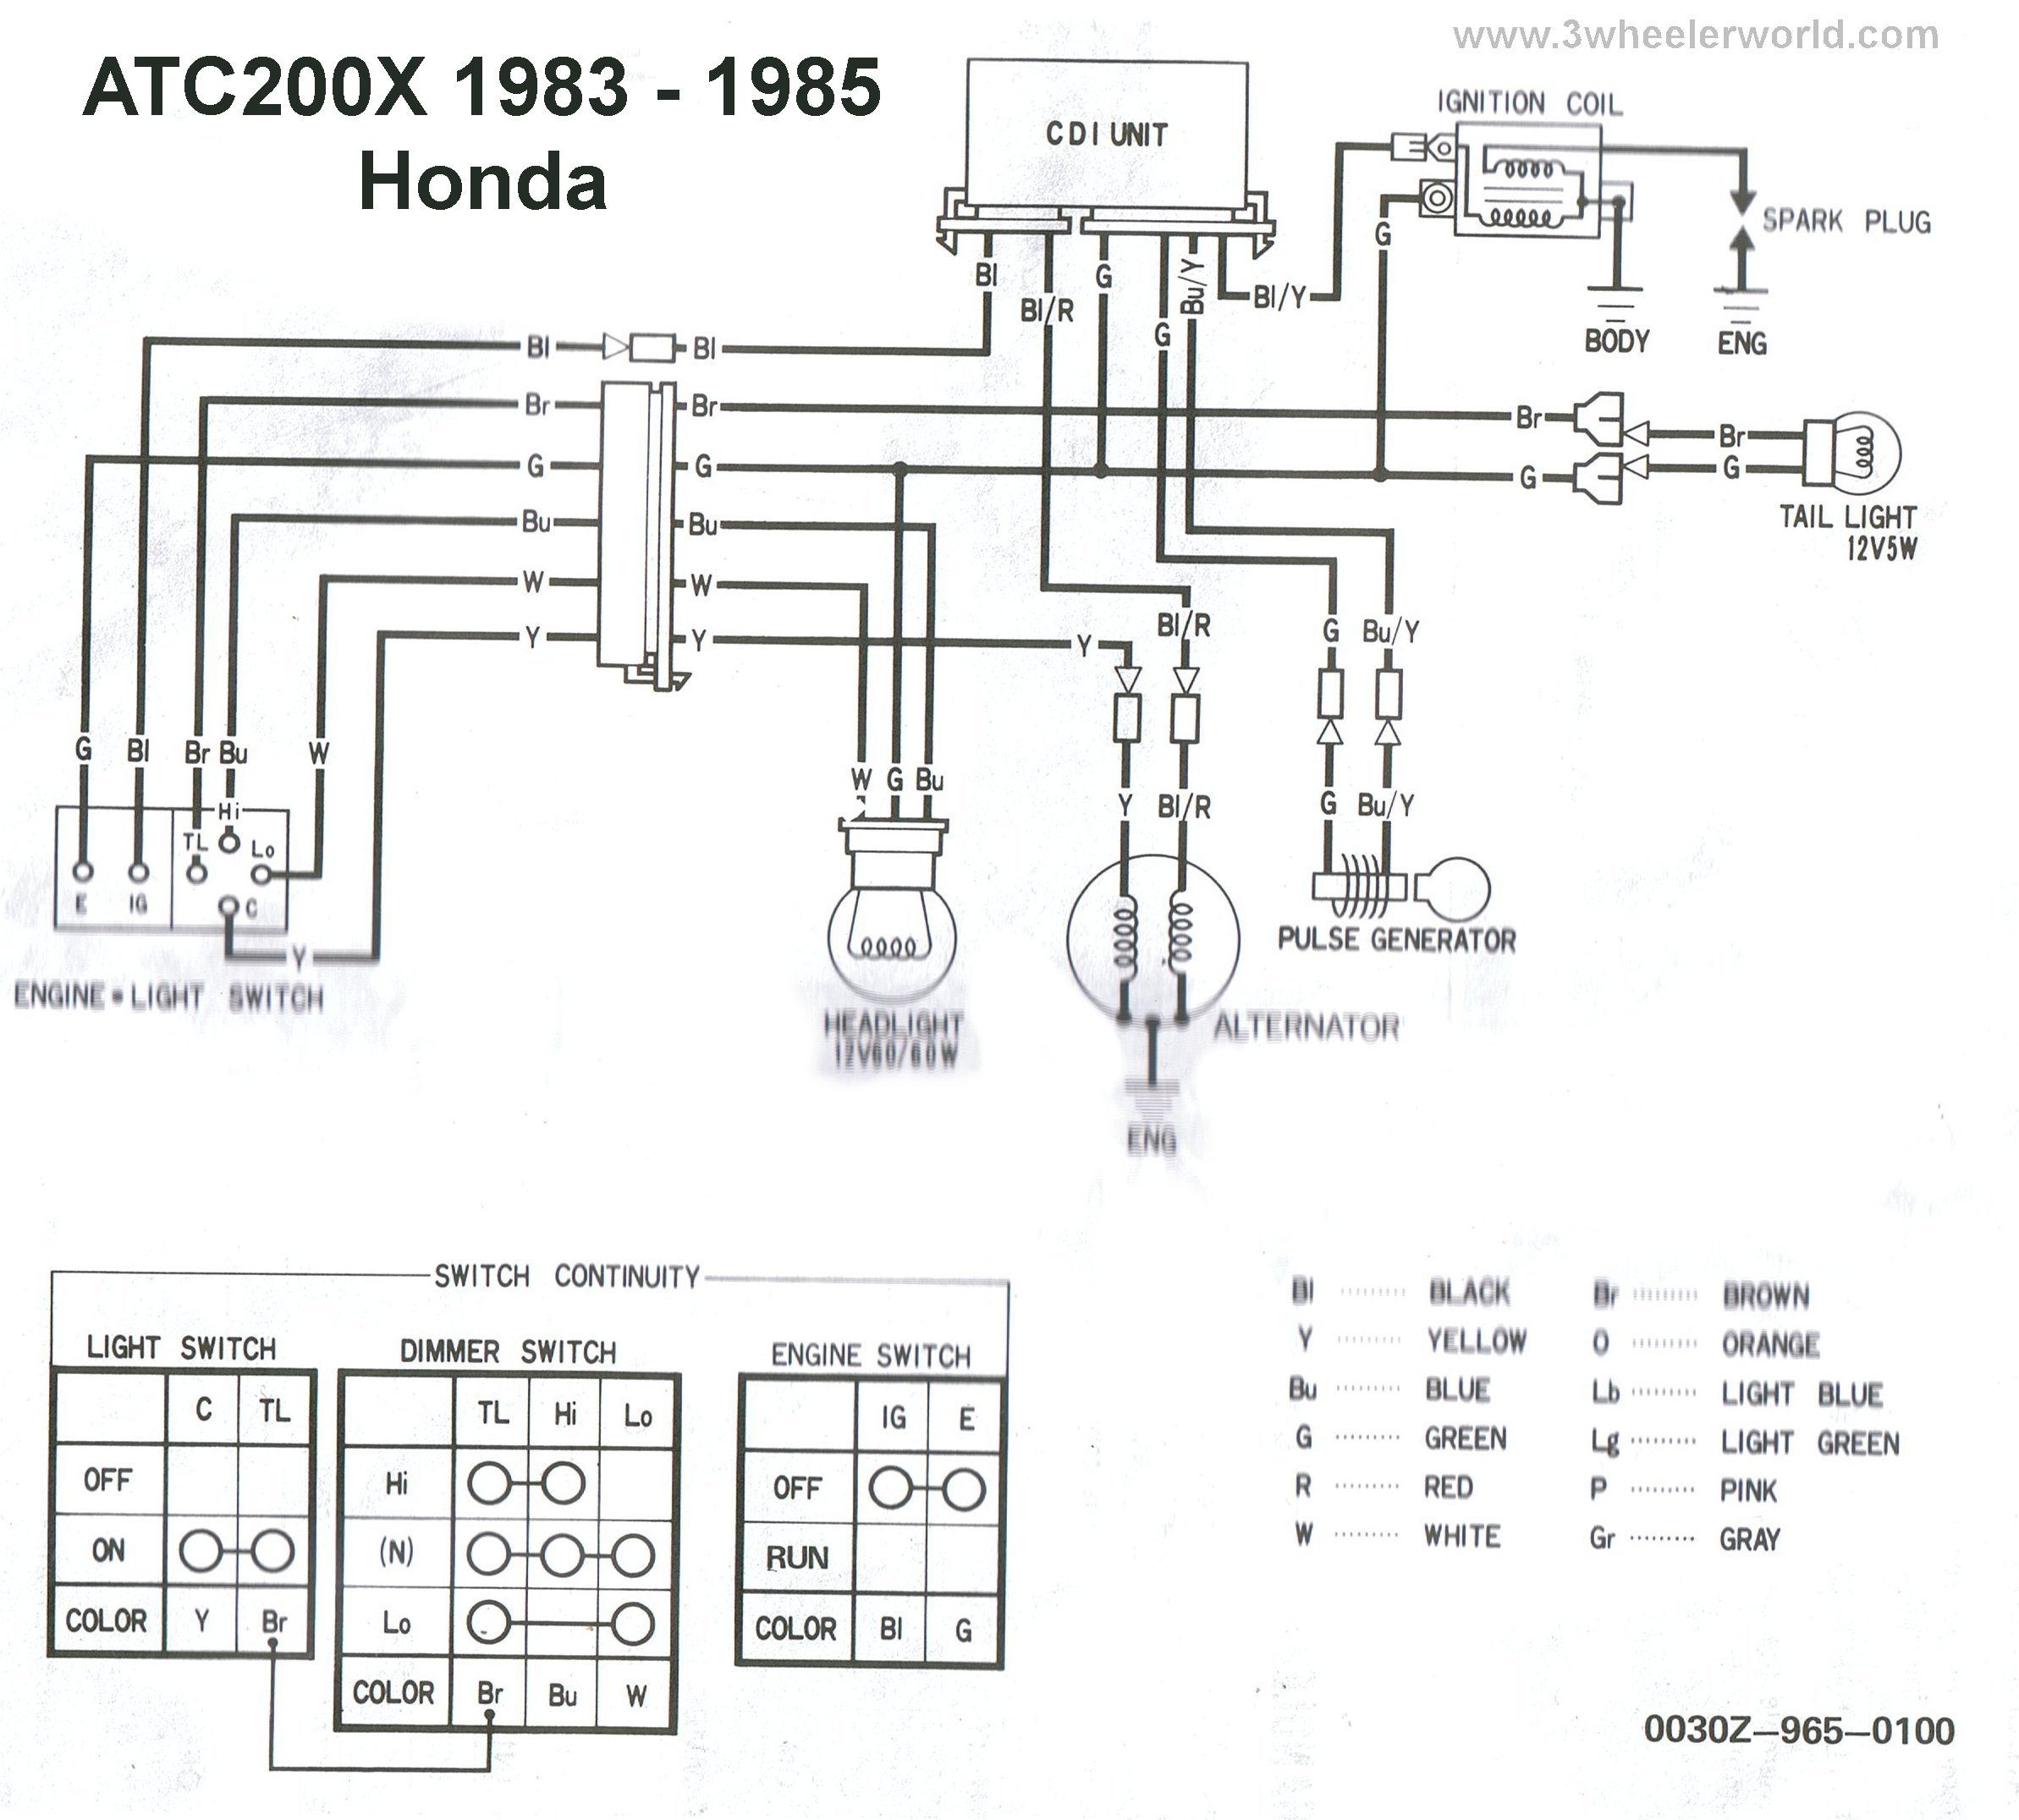 Honda 200s Wiring Diagram Schema Diagrams 1985 Goldwing 3 Wheeler World Tech Help Engine Atc200x 1983 Thru